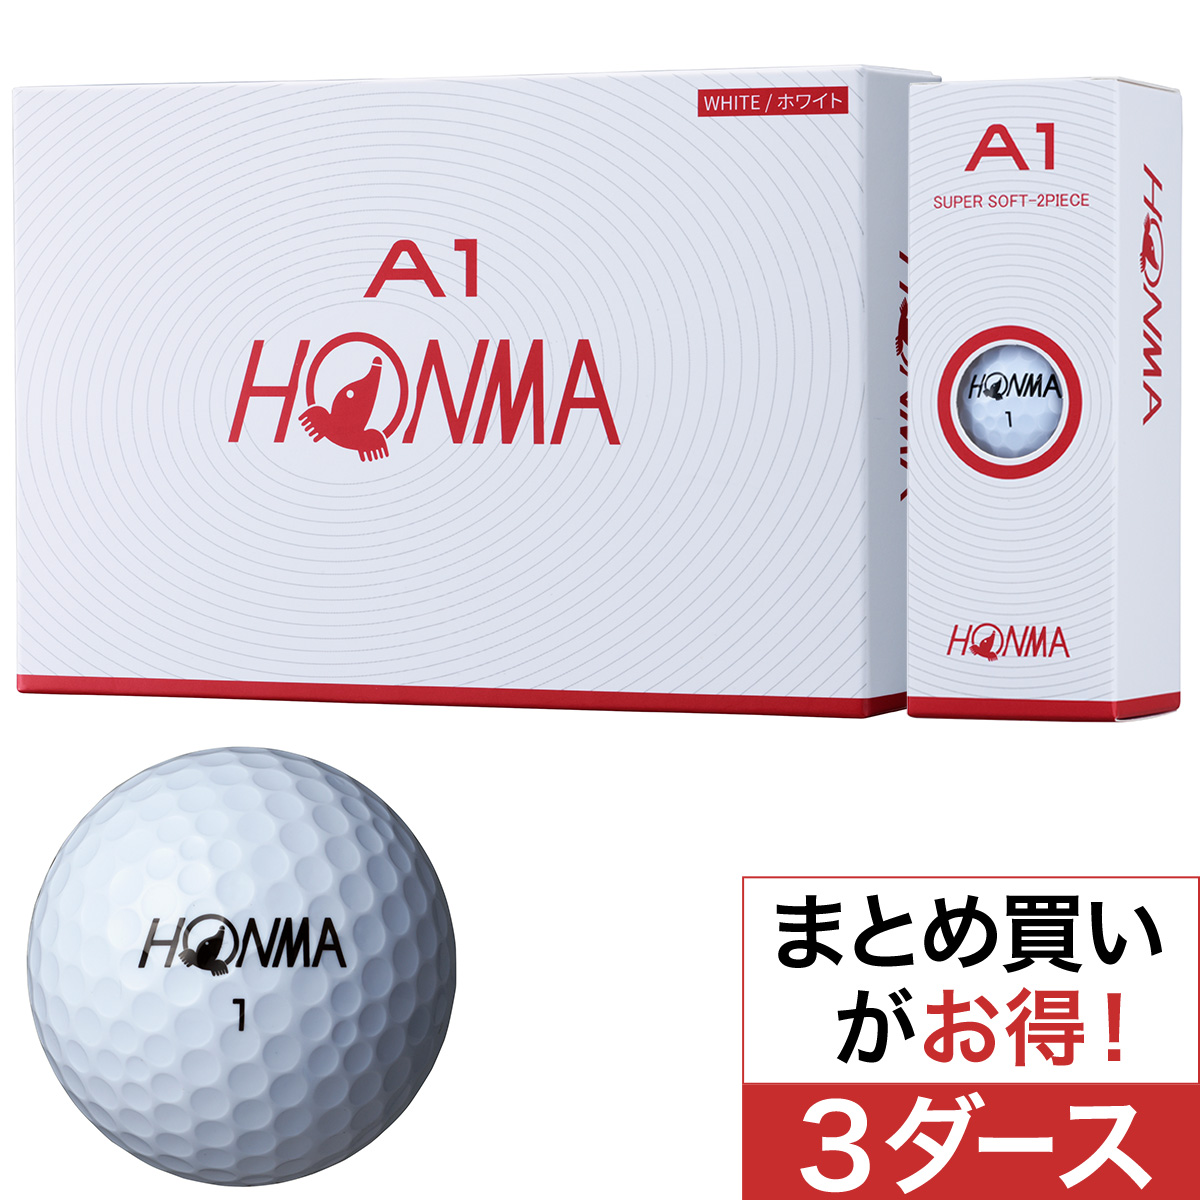 A1 ボール 3ダースセット